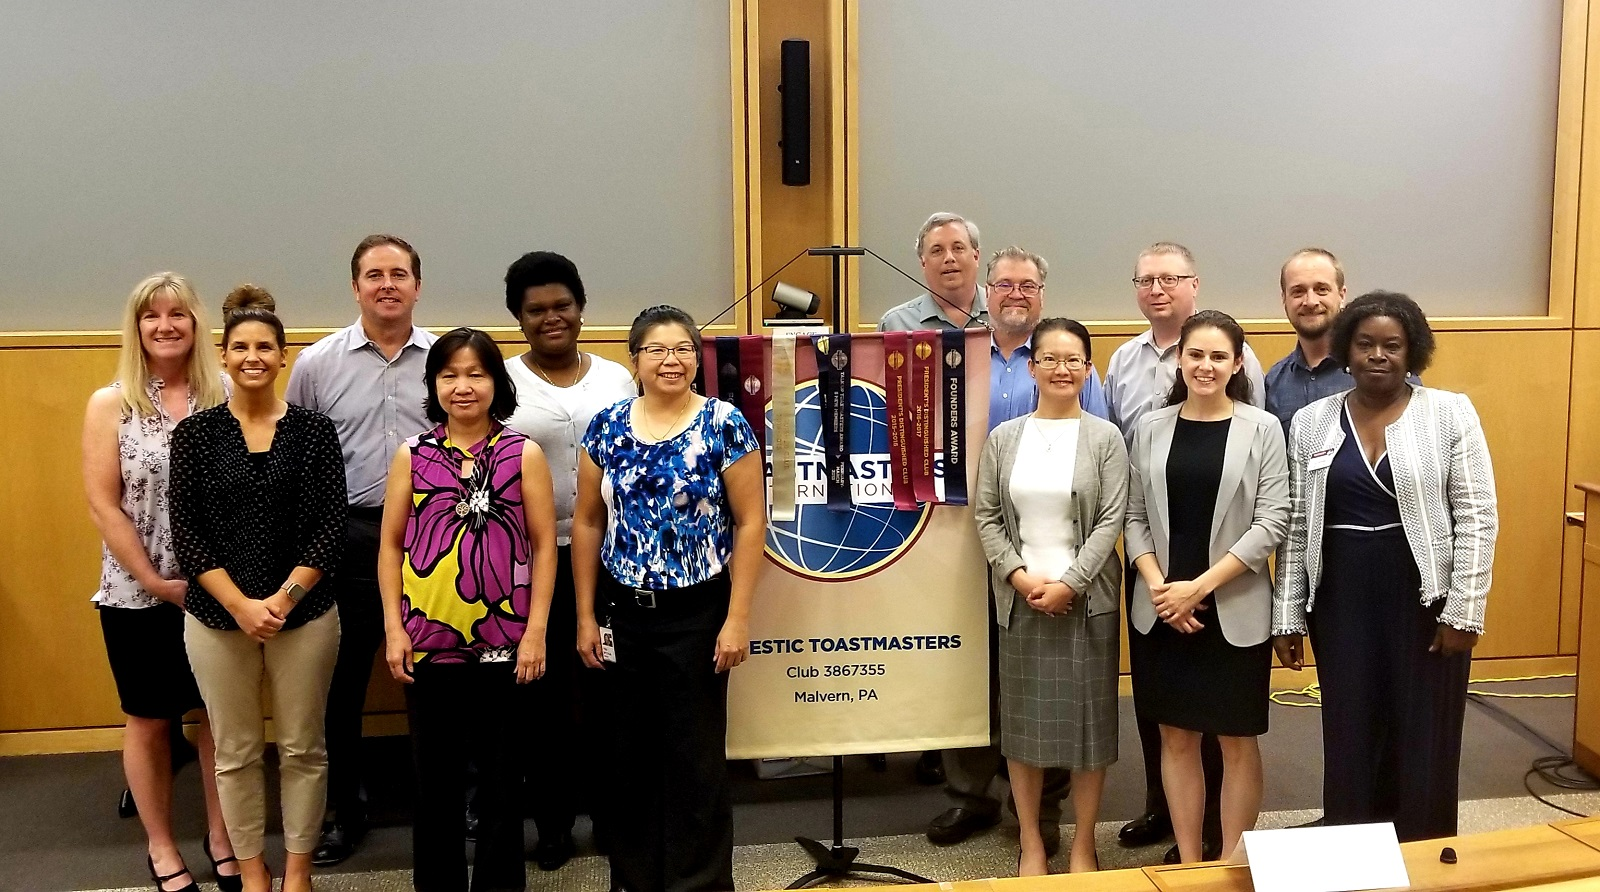 The diverse members of the Majestic Toastmasters club in Malvern, Pennsylvania, pose proudly with their club banner.